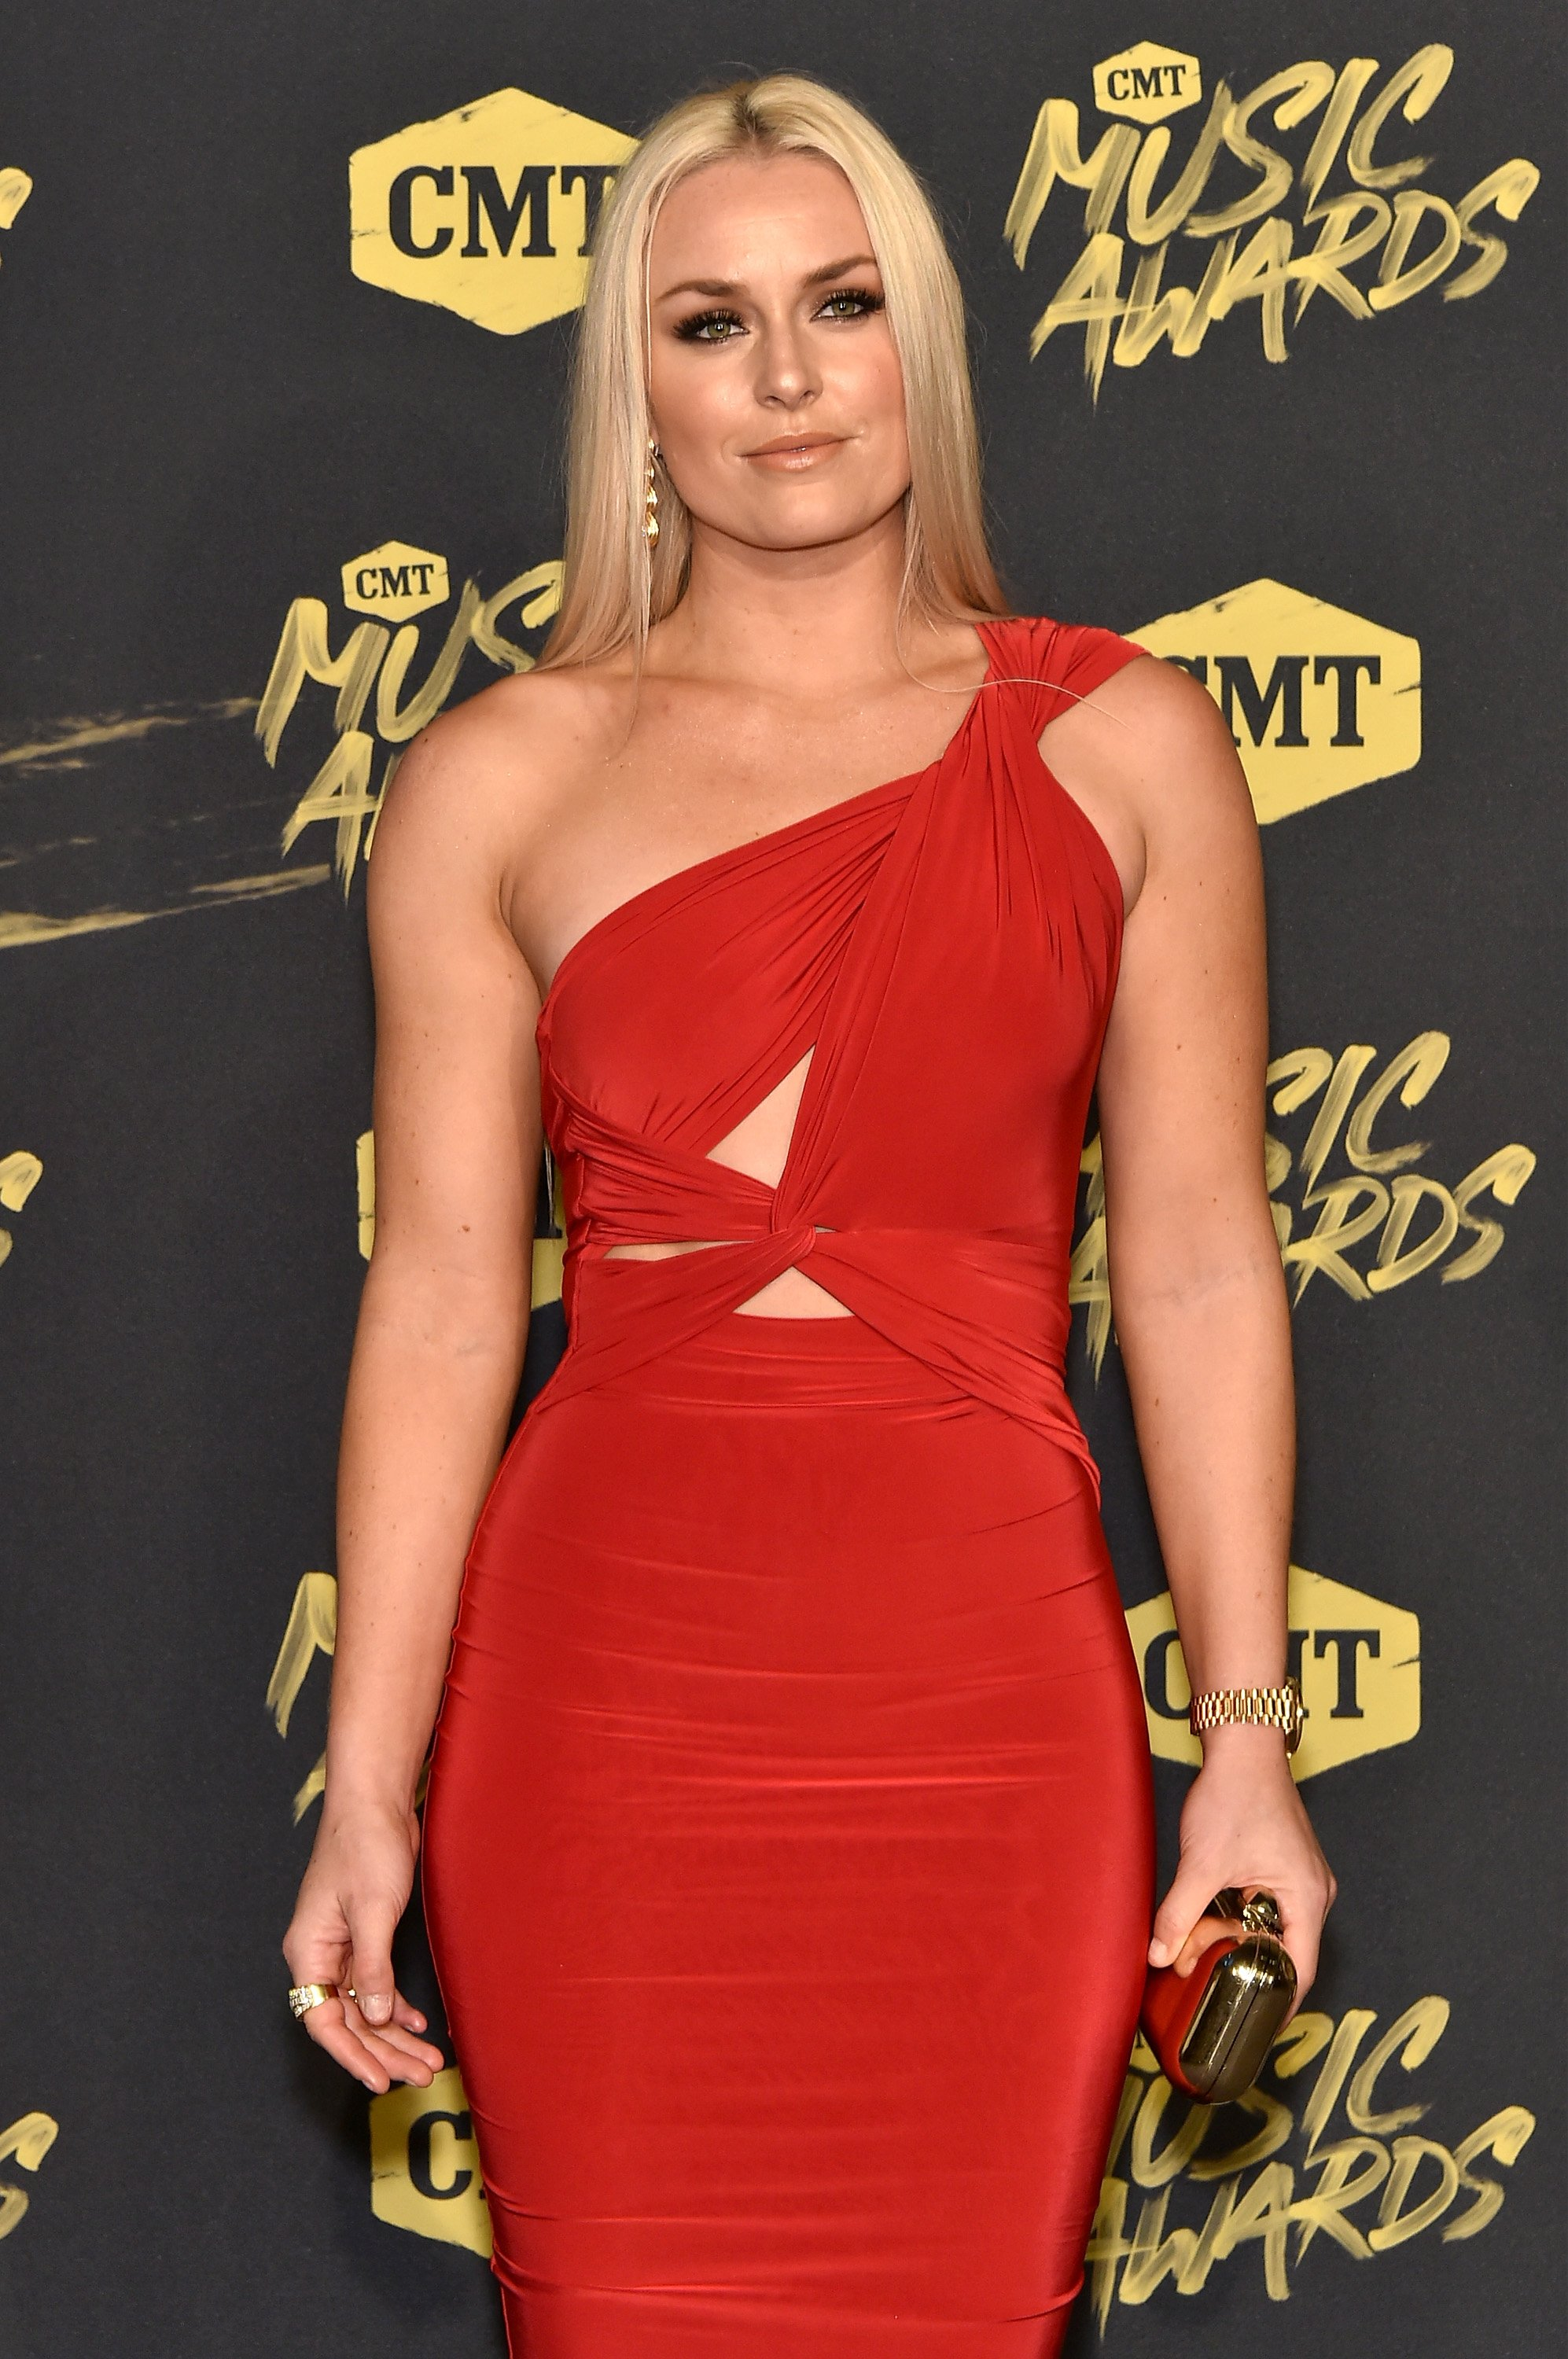 """""""The Pack"""" host, Lindsey Vonn attend the 2018 CMT Awards at the Bridgestone Arena, Nashville, Tennessee, on June 7, 2018. 